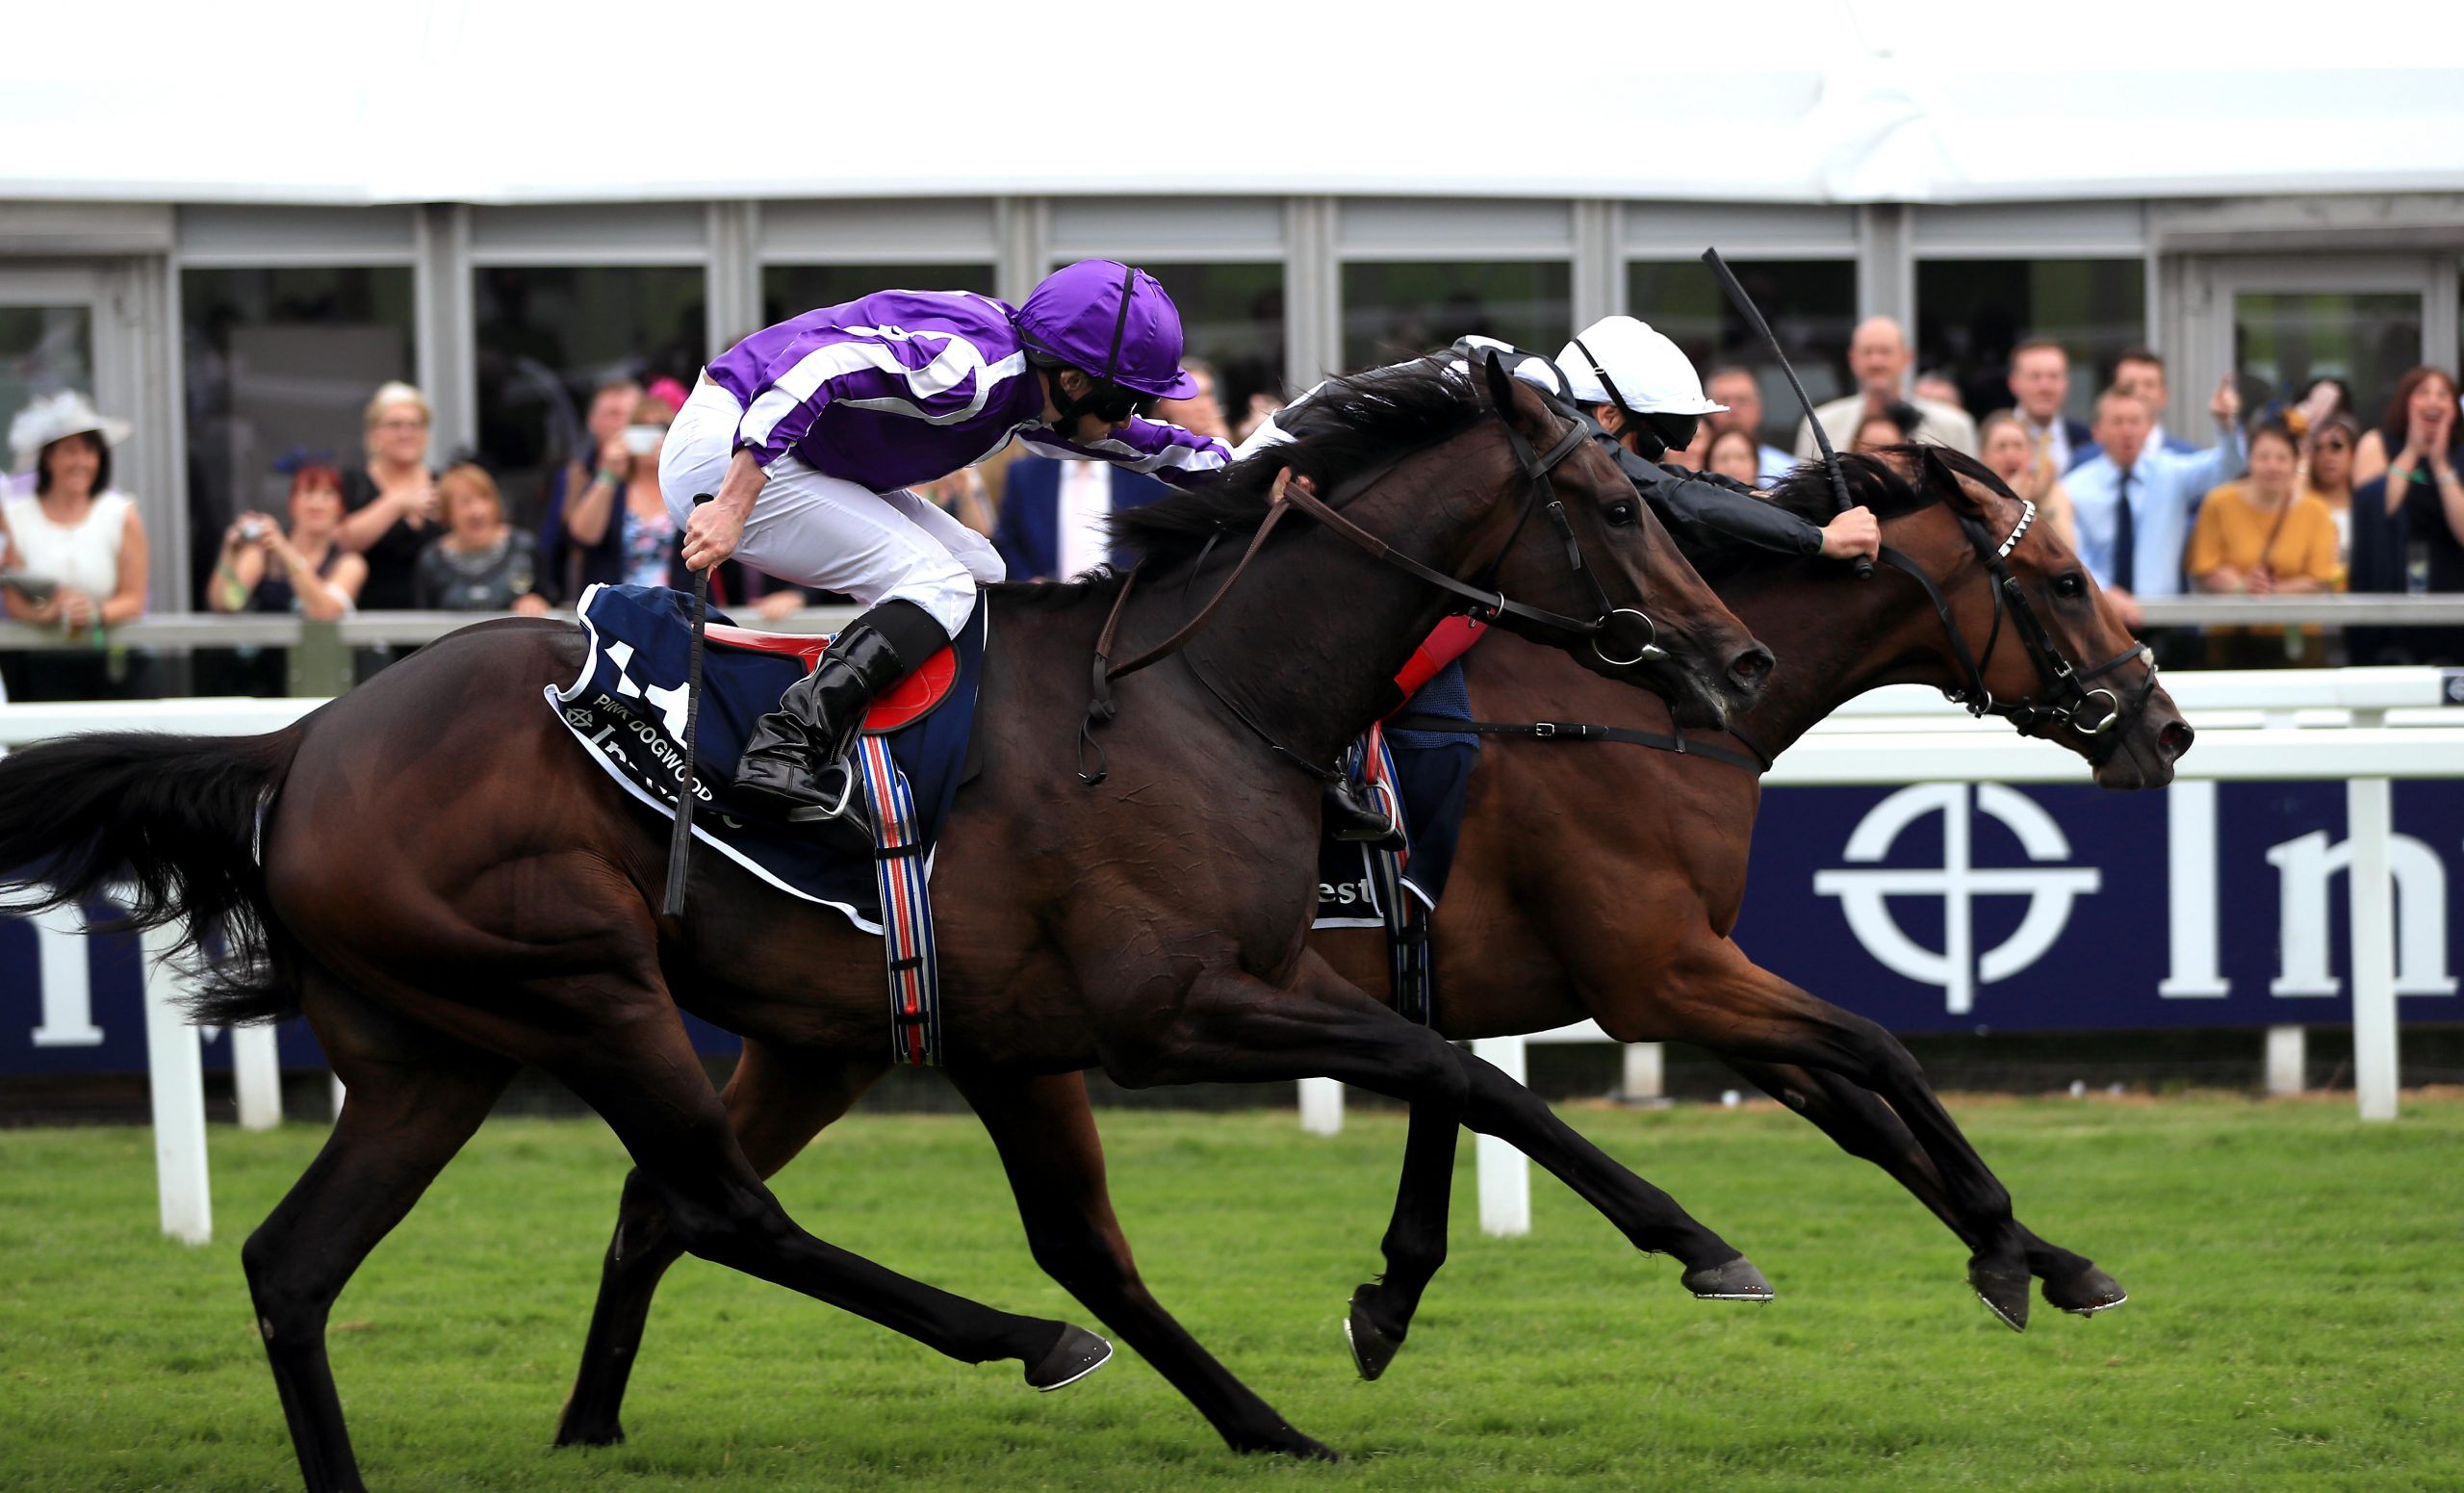 Anapurna ridden by Jockey Frankie Dettori (right) on the way to winning the Investec Oaks during Ladies Day of the 2019 Investec Derby Festival at Epsom Racecourse, Epsom.